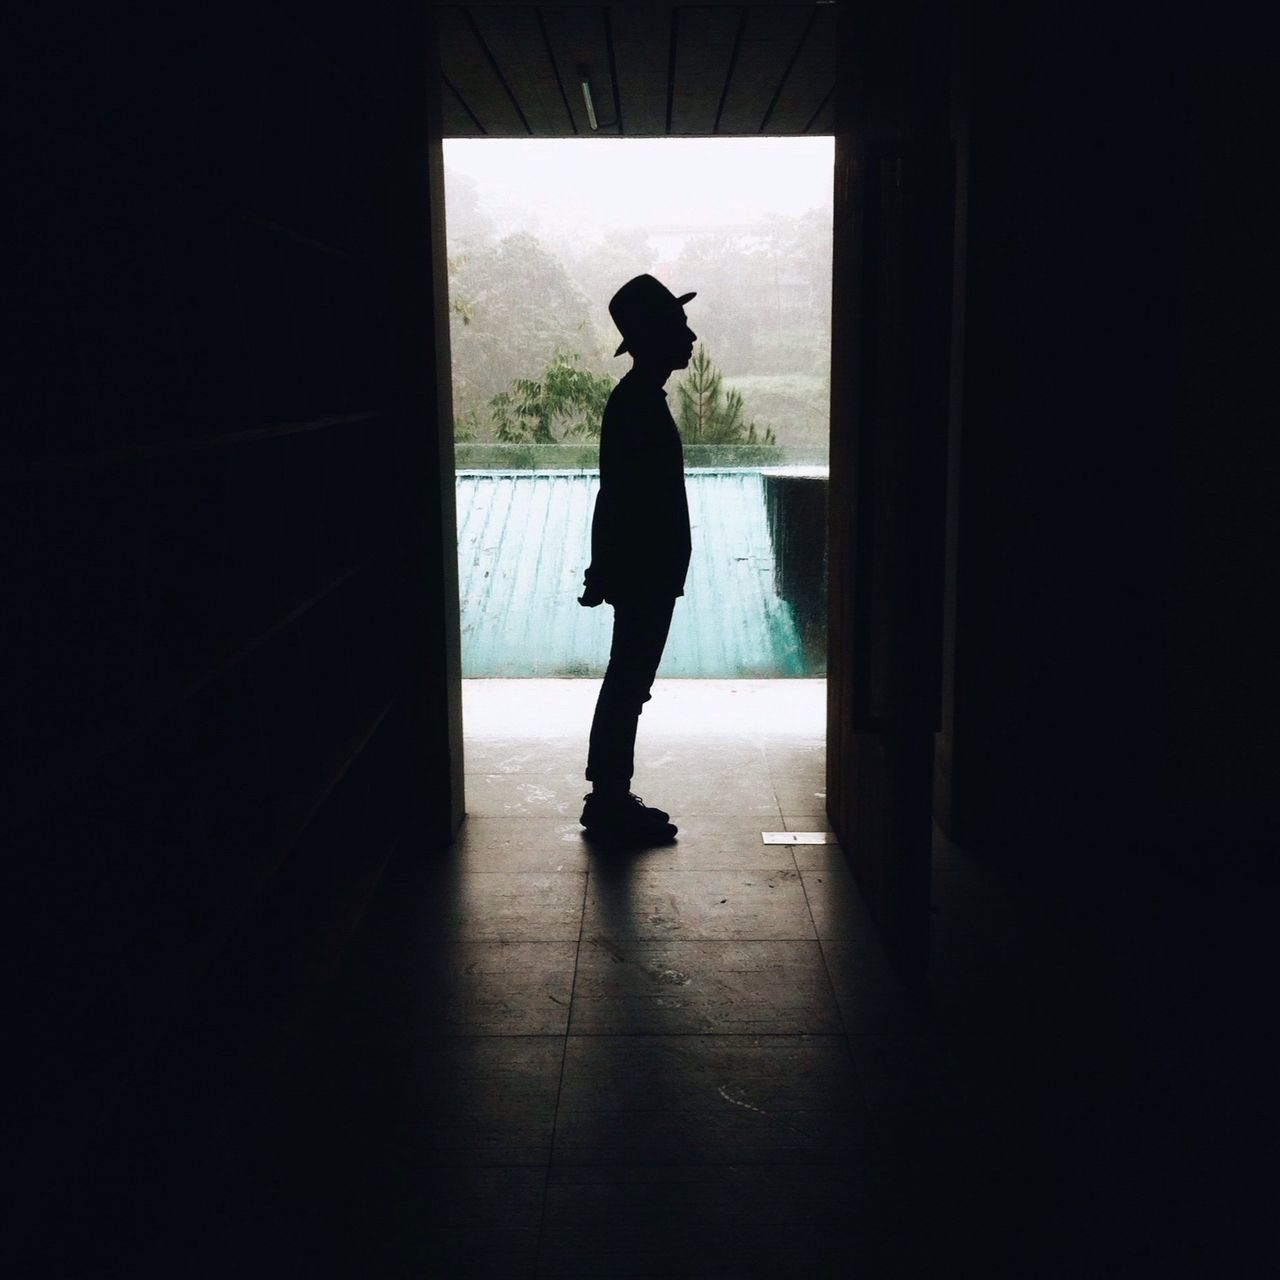 indoors, one person, full length, window, silhouette, real people, standing, lifestyles, women, day, open door, young adult, people